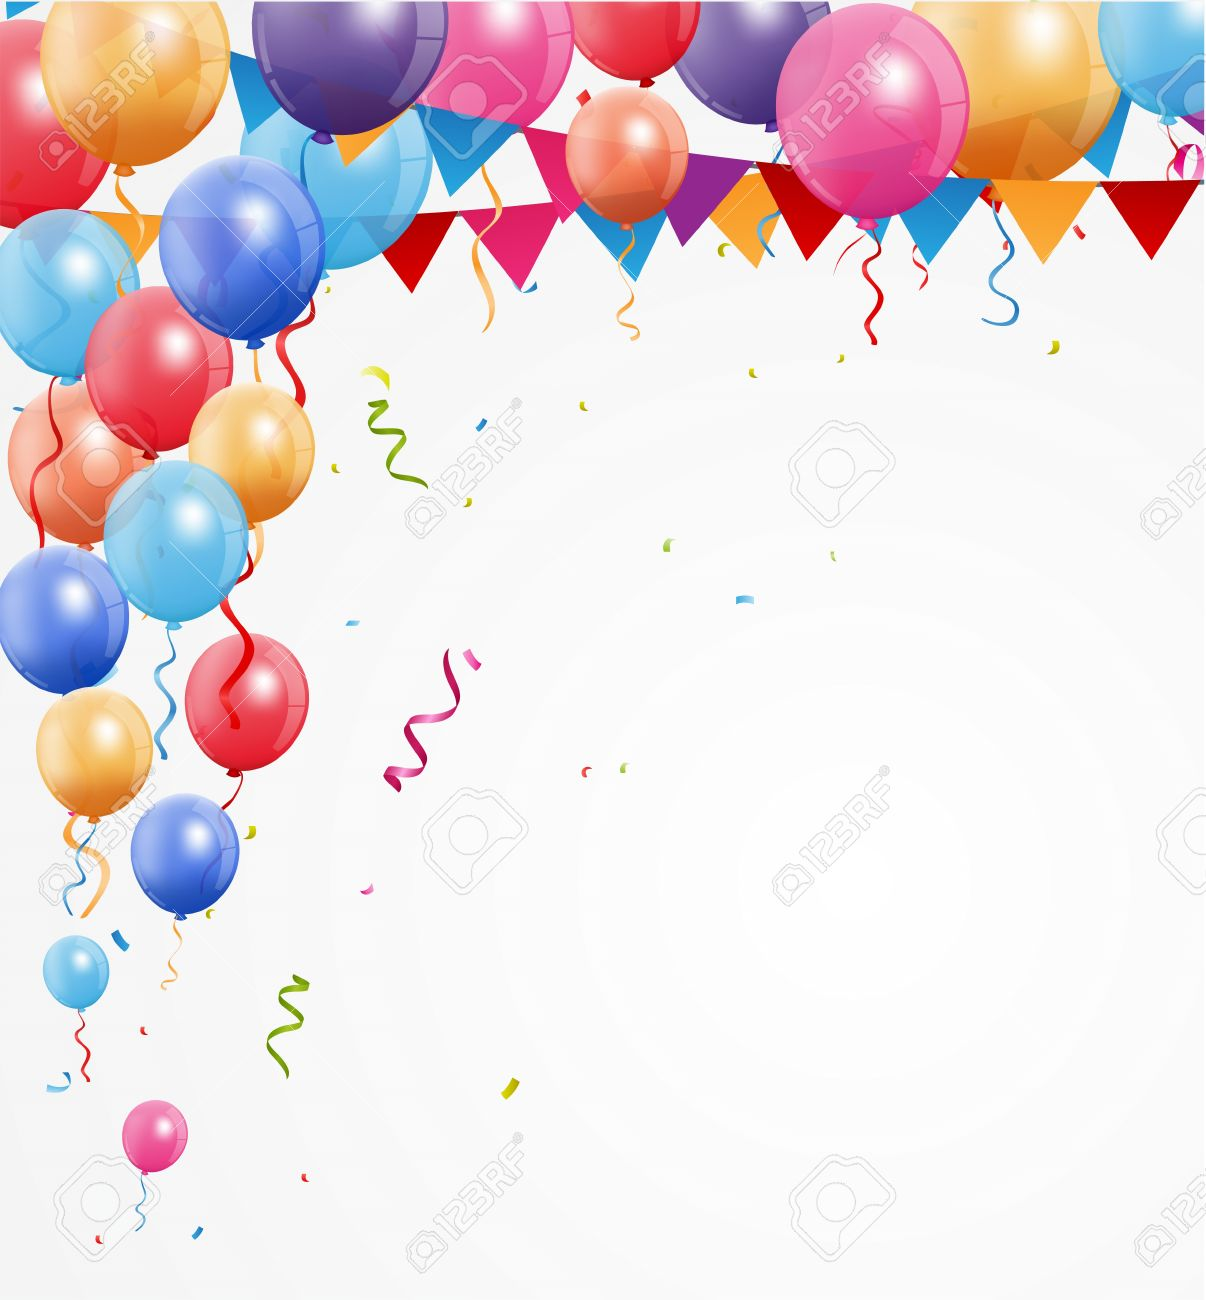 Happy Birthday Greetings With Balloon And Confetti Royalty Free